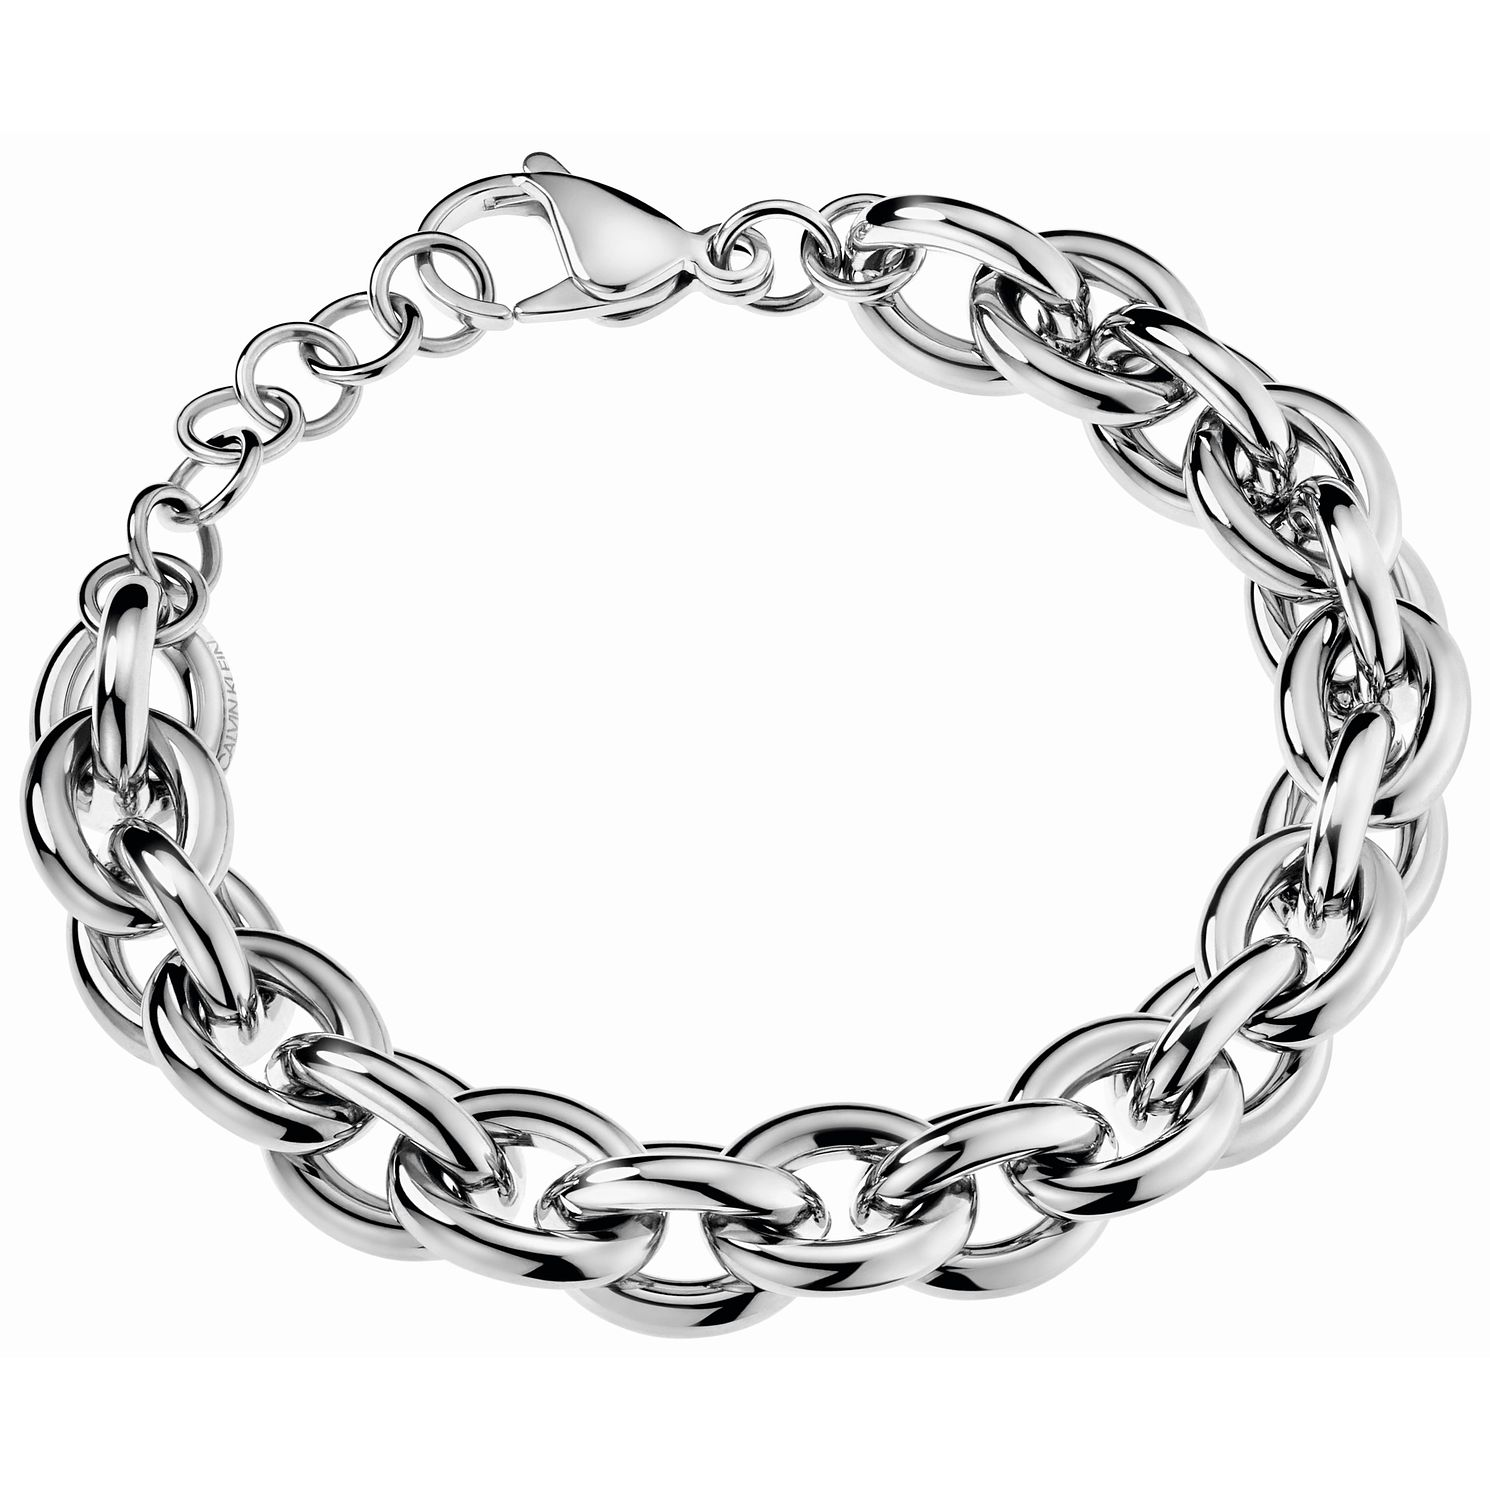 Calvin Klein Statement Stainless Steel Heavy Chain Bracelet - Product number 5520061